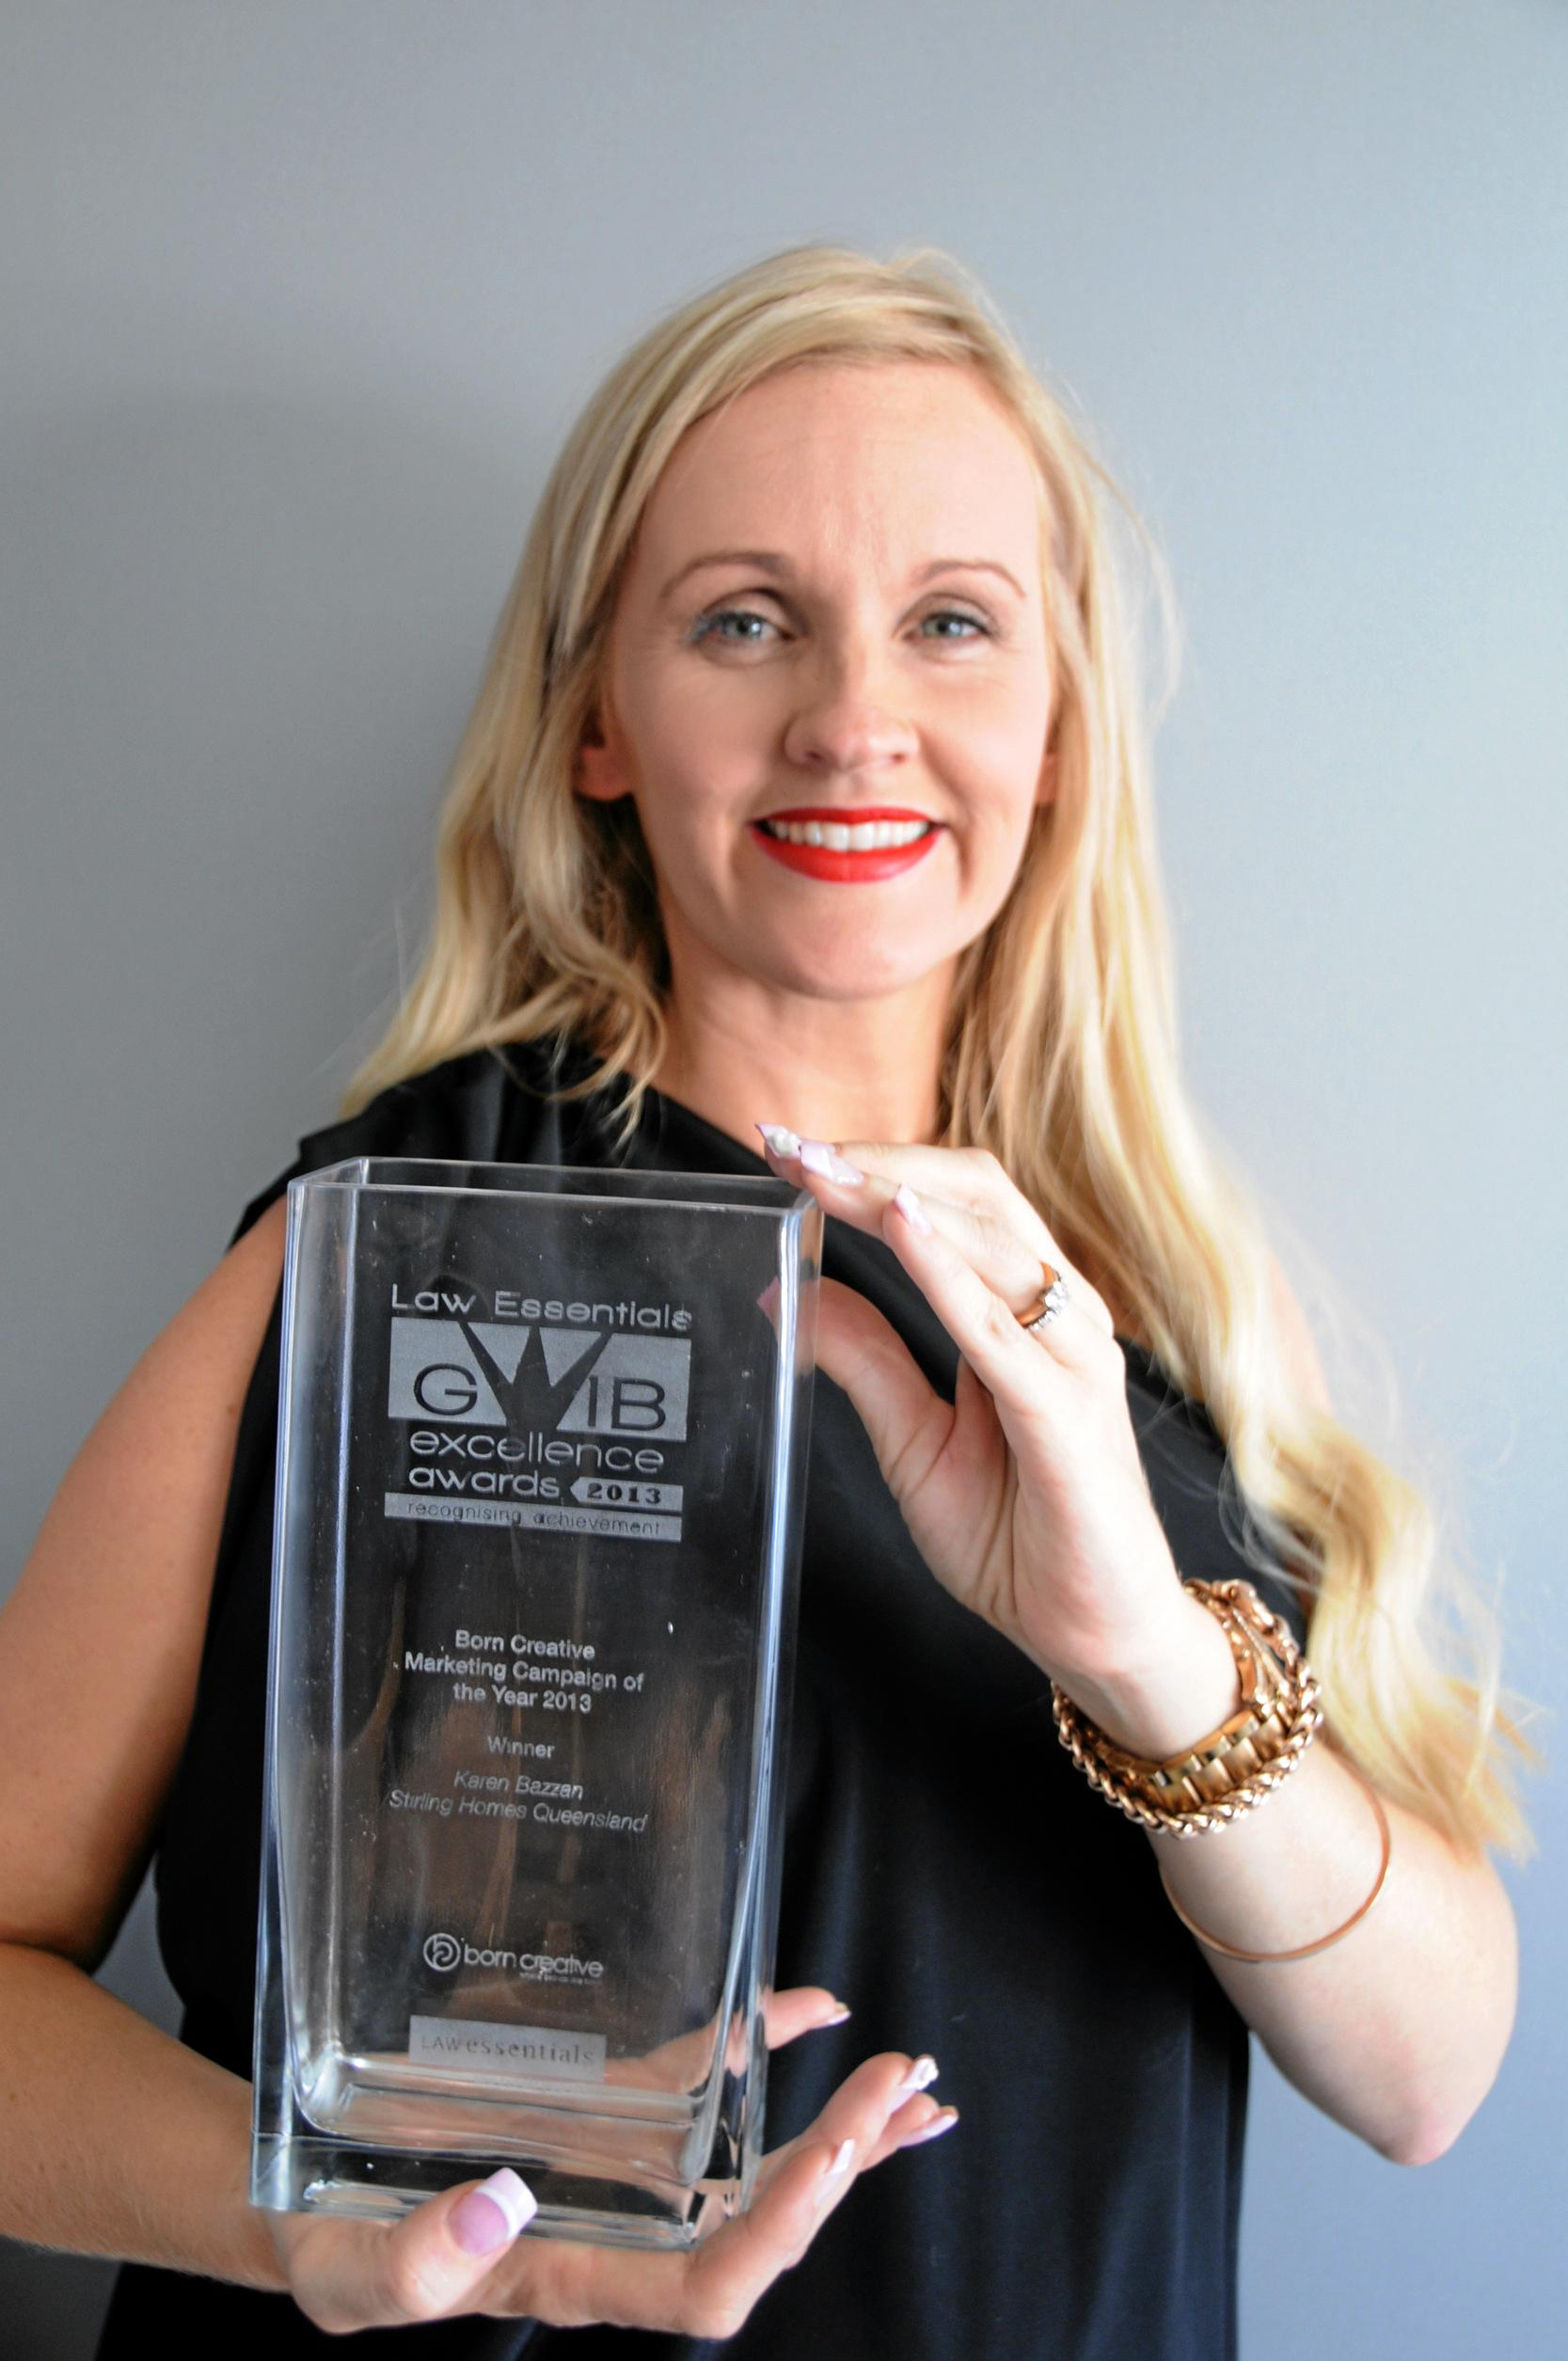 Karen Bazzan in 2013 with the Born Creative marketing Campaign of the Year award for Stirling Homes.